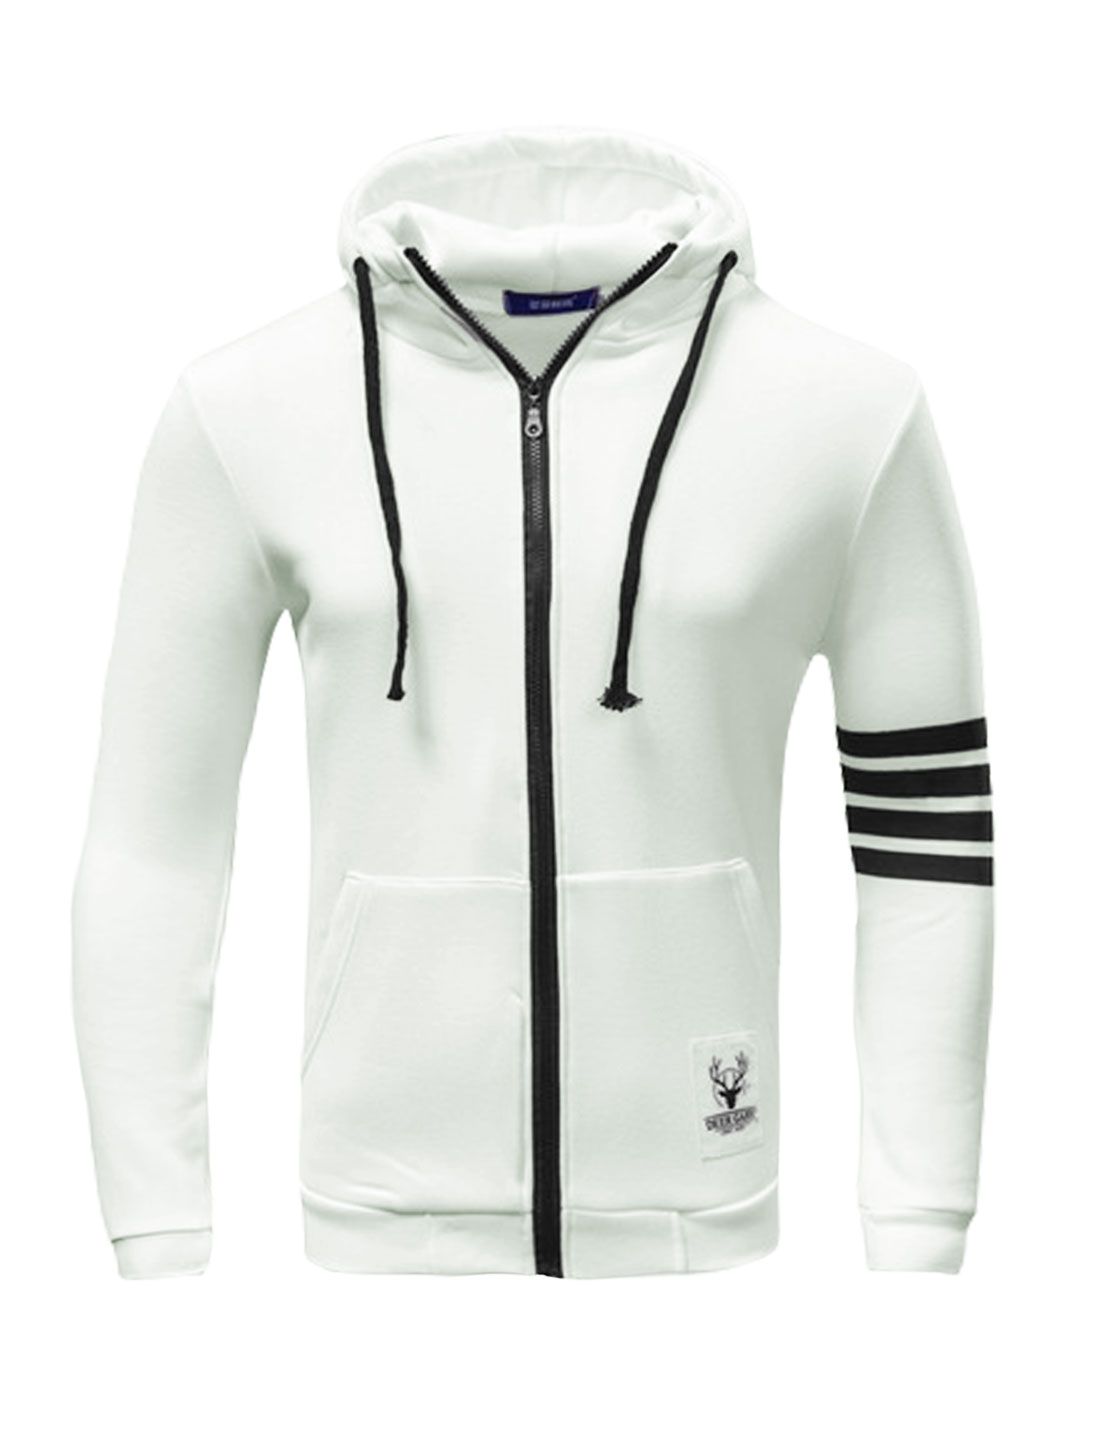 Man Kangaroo Pockets Zip Up Striped Drawstring Hoodie White M